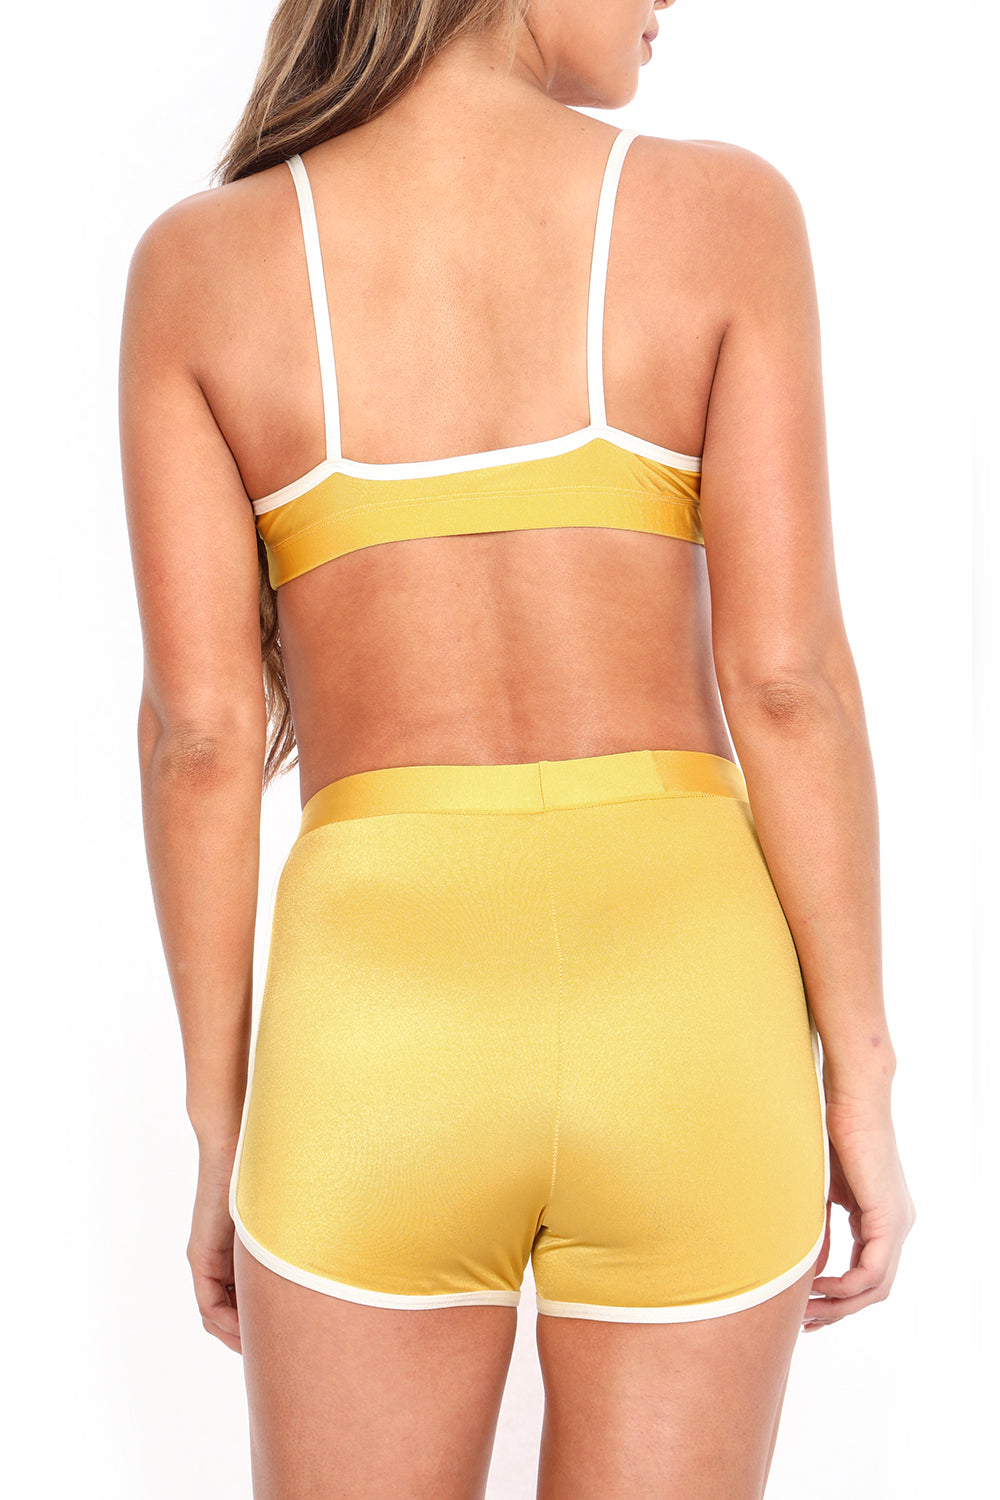 Mustard Yellow Track Sports Bra - POPRAGEOUS d29c748b0